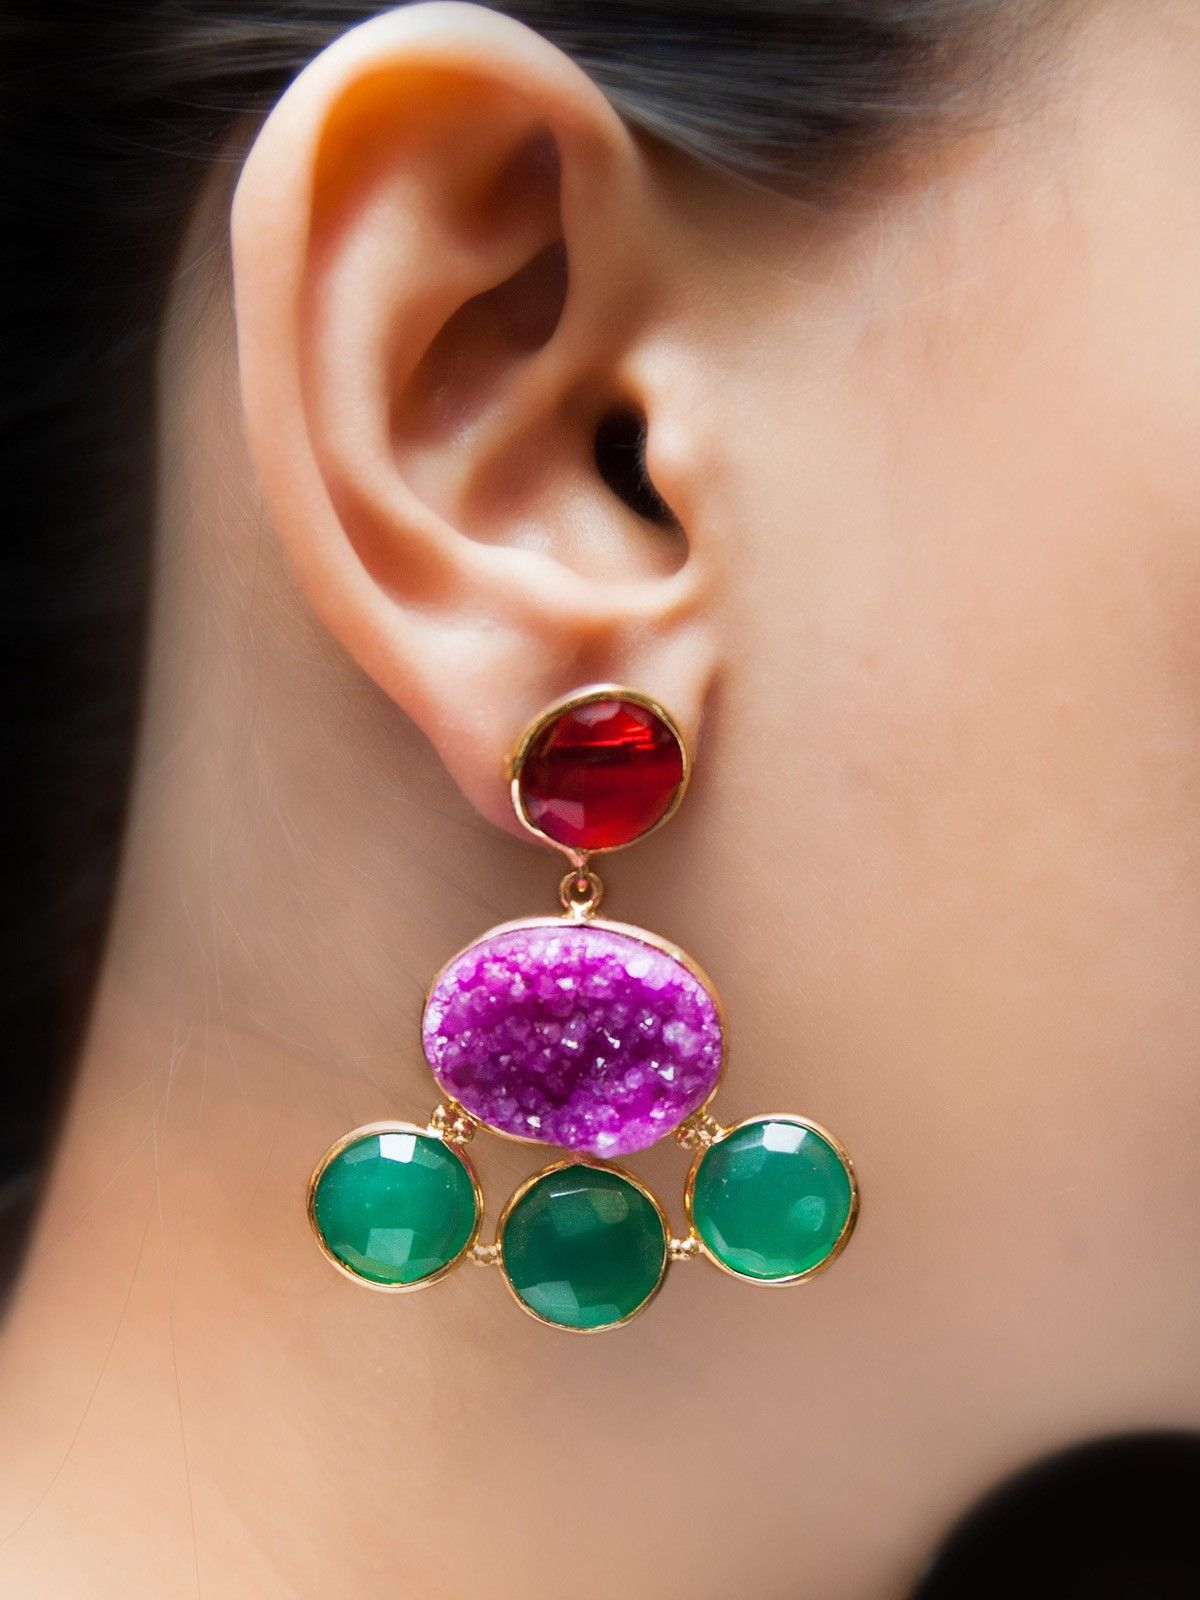 Heliospheric Wave earrings